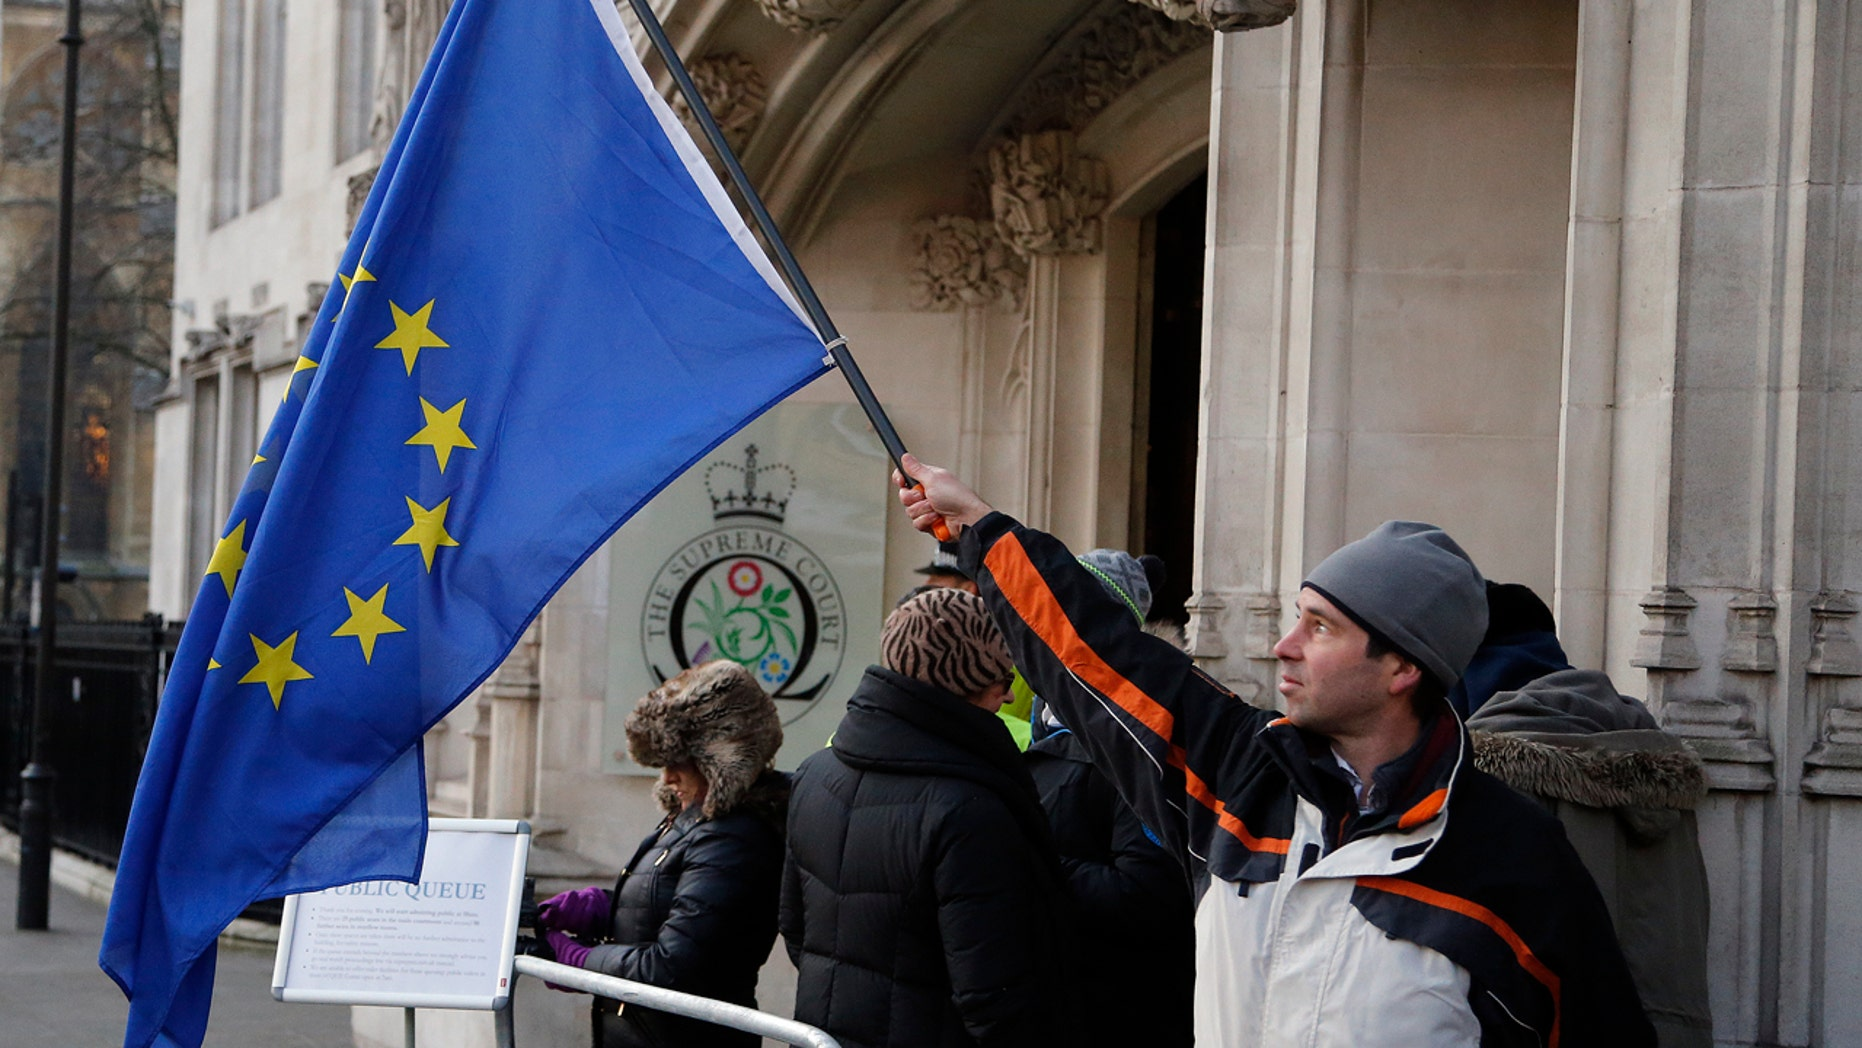 A man waves a European flag in front of the Supreme Court in London, Monday, Dec. 5, 2016.